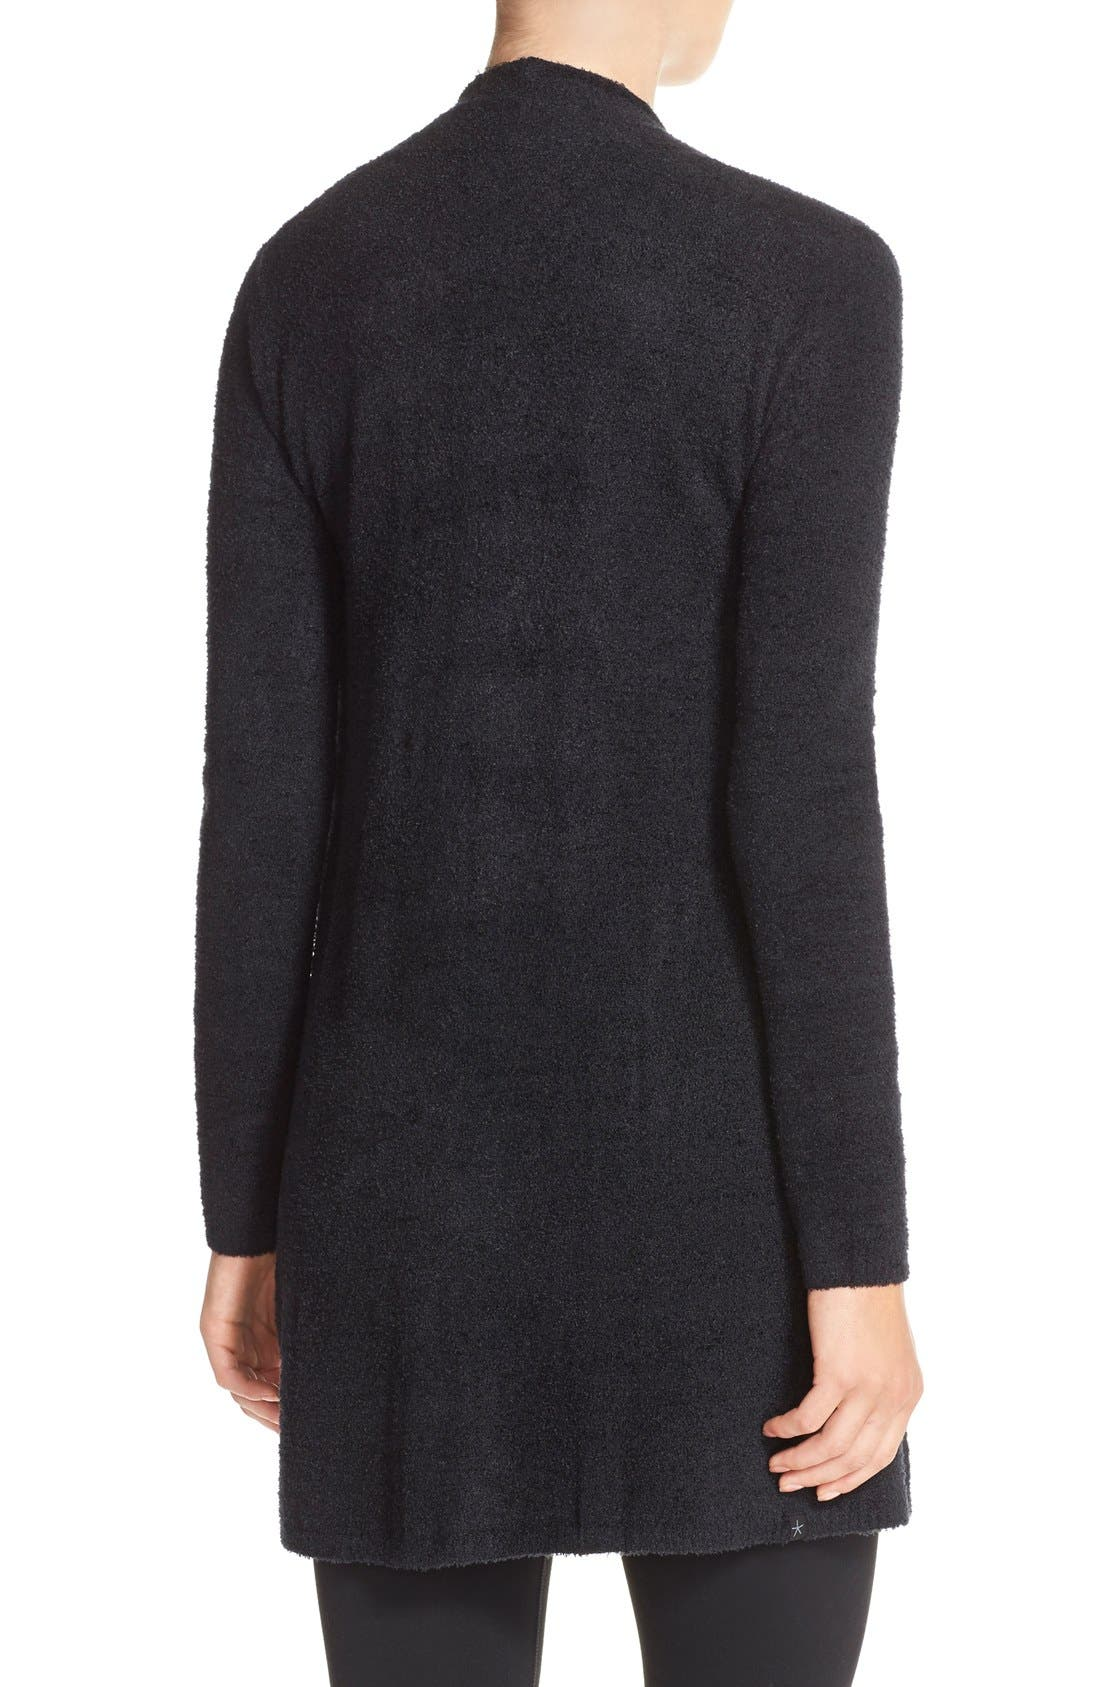 CozyChic Lite<sup>®</sup> Calypso Wrap Cardigan,                             Alternate thumbnail 9, color,                             BLACK